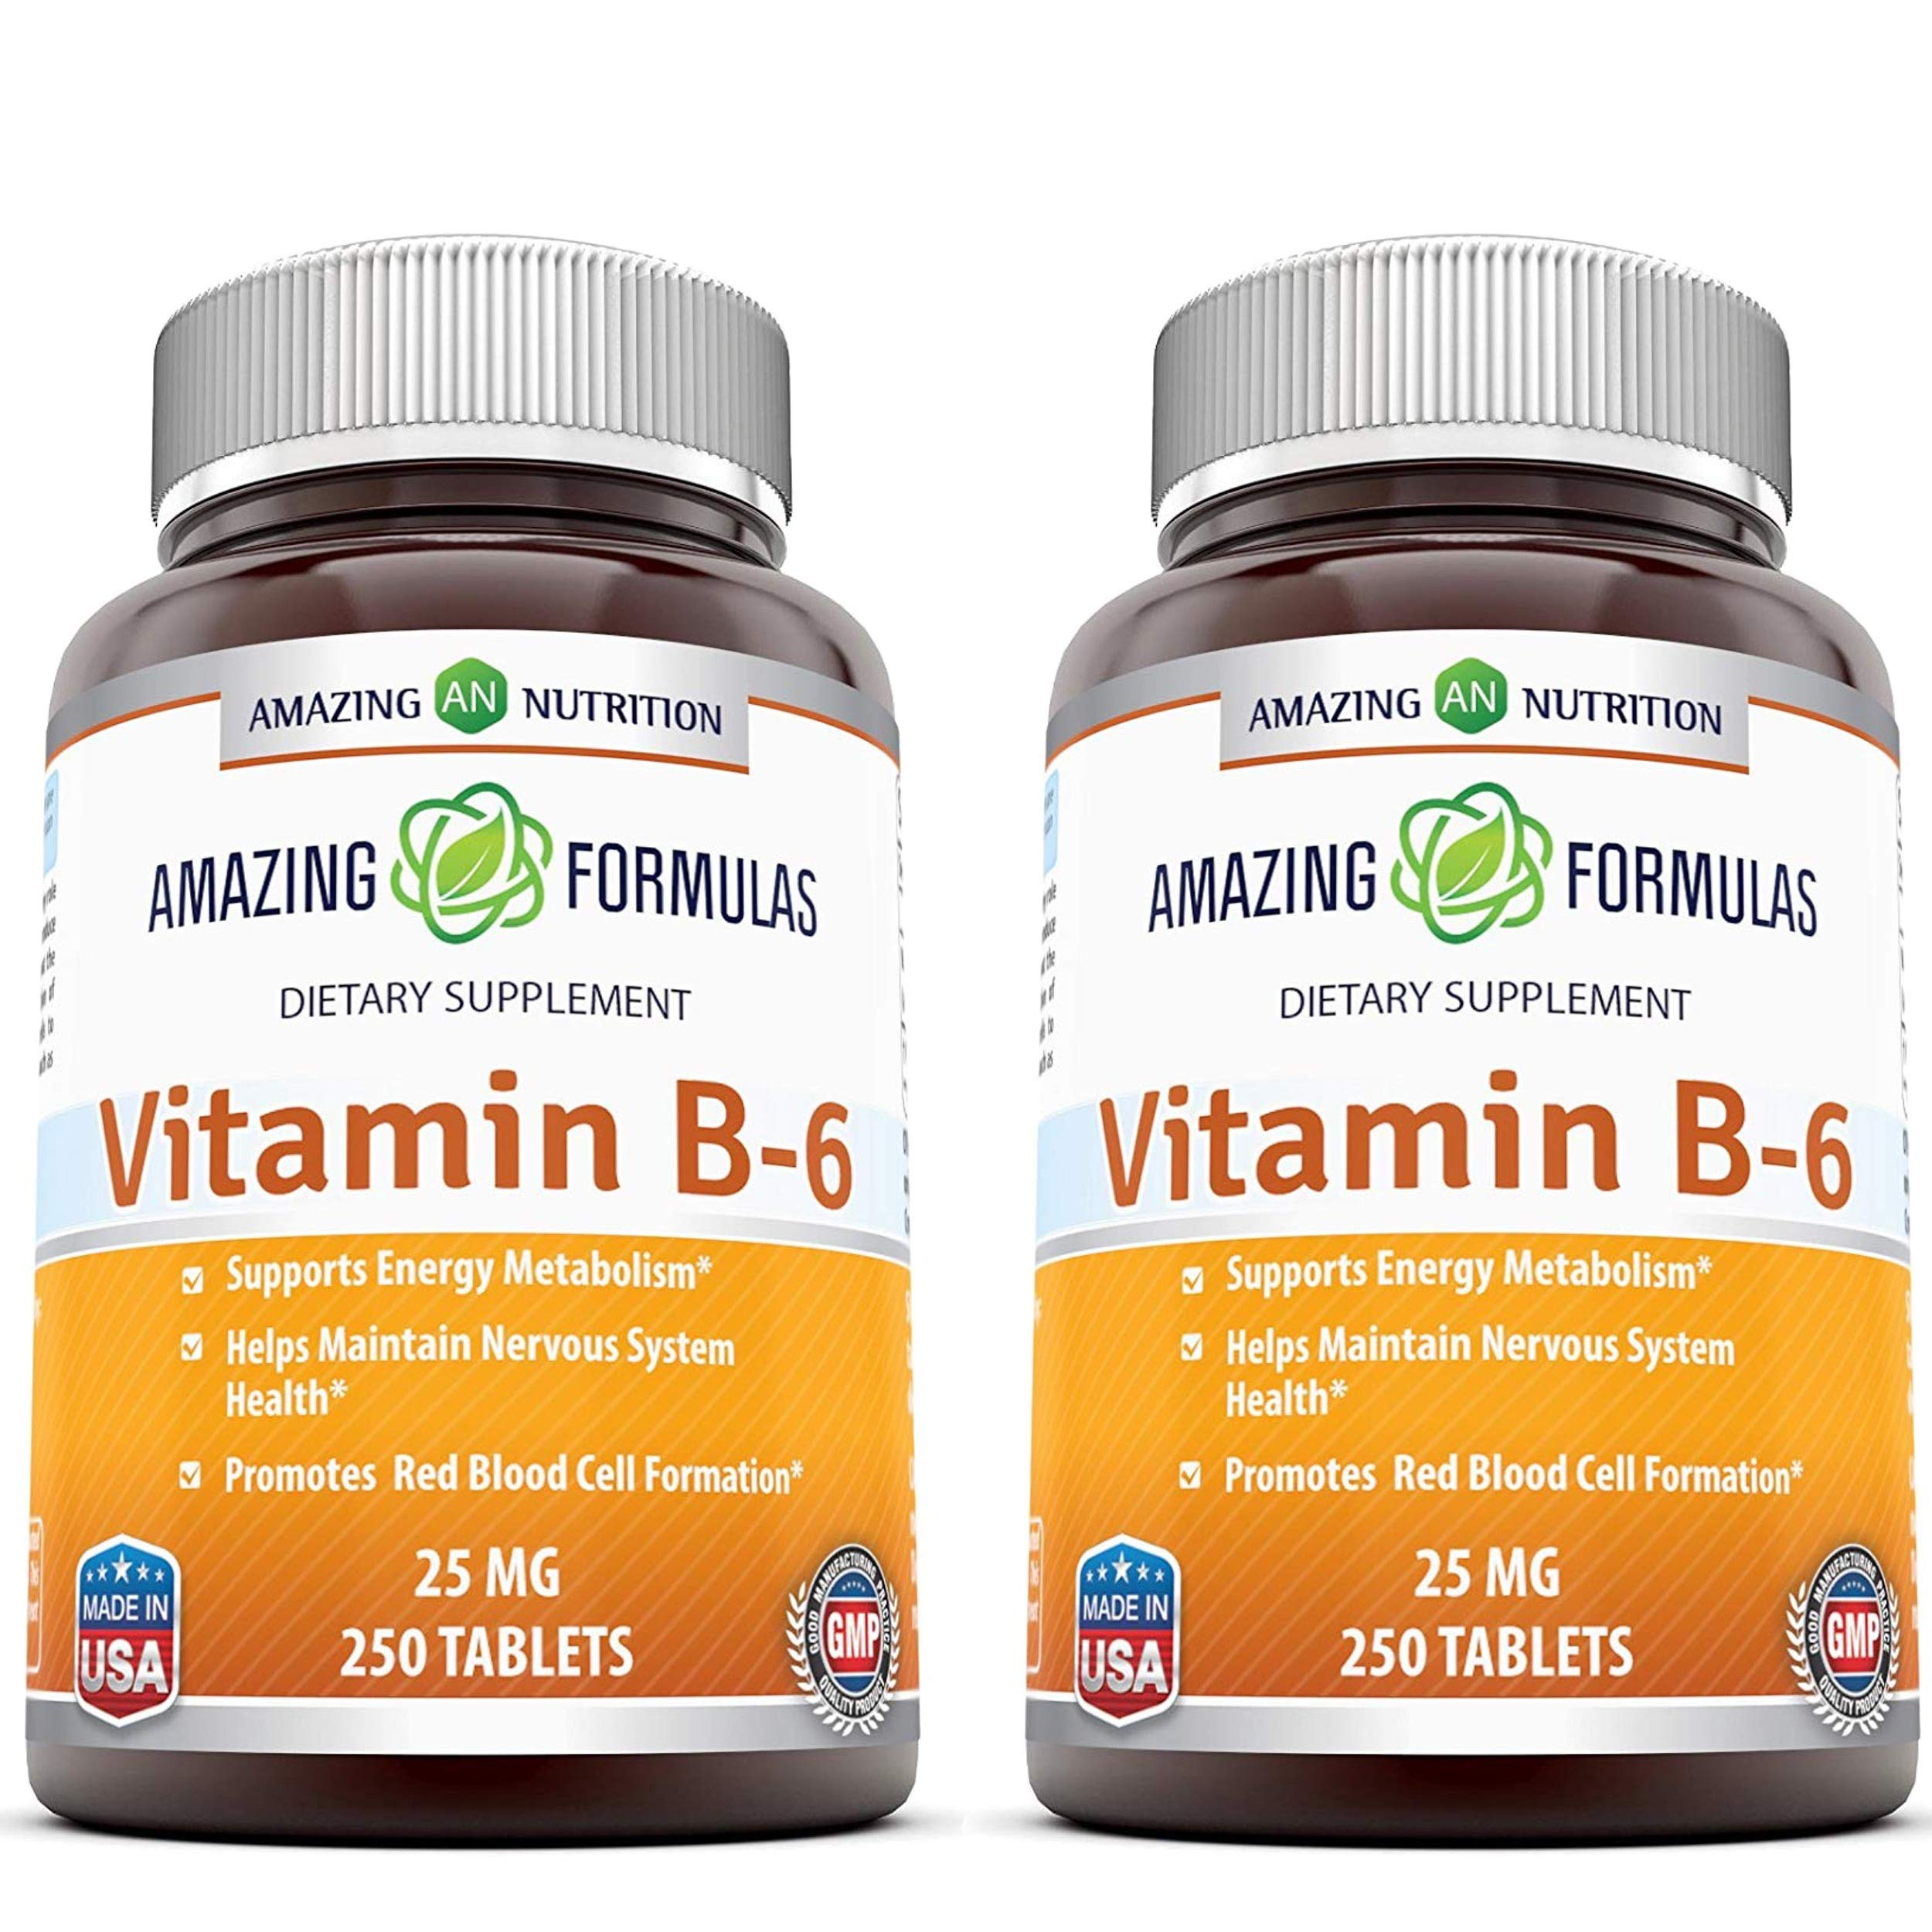 Amazing Nutrition Vitamin B6 Dietary Supplement - 25 mg, Pack of 2-250 Tablets - Supports Healthy Nervous System, Metabolism & Cell Health by Amazing Nutrition